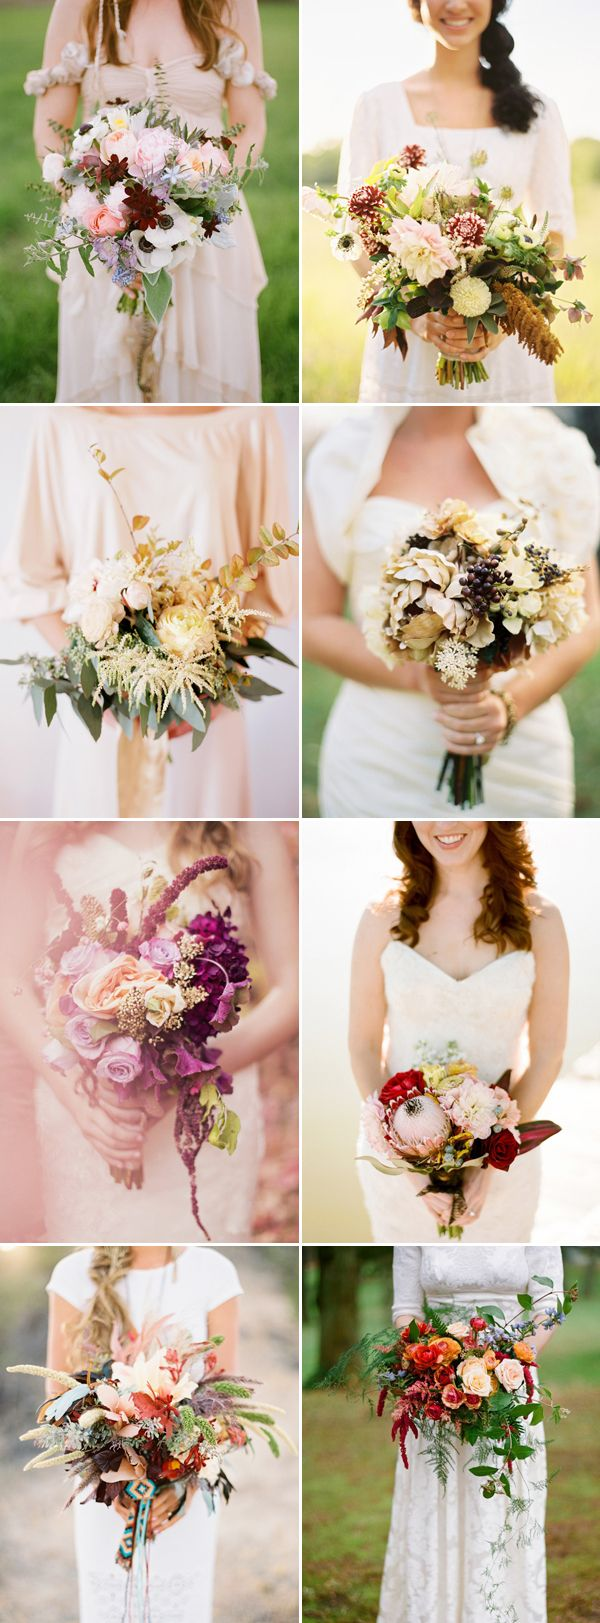 22 Gorgeous Fall Wedding Bouquets